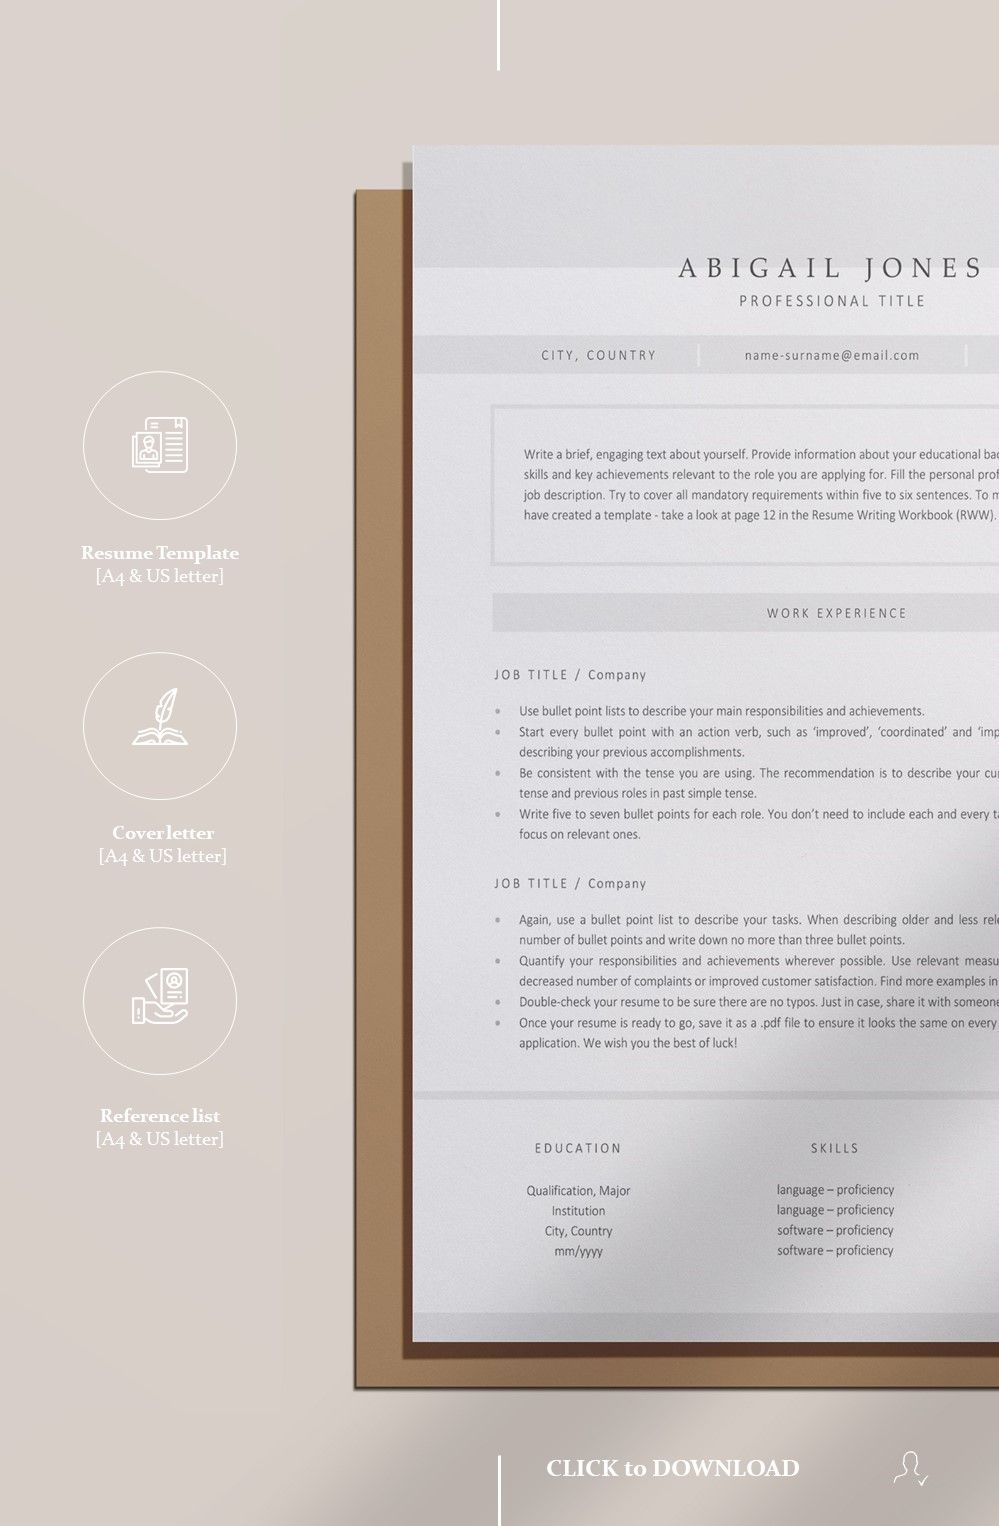 Resume Template Instant Download, Minimalist CV Template